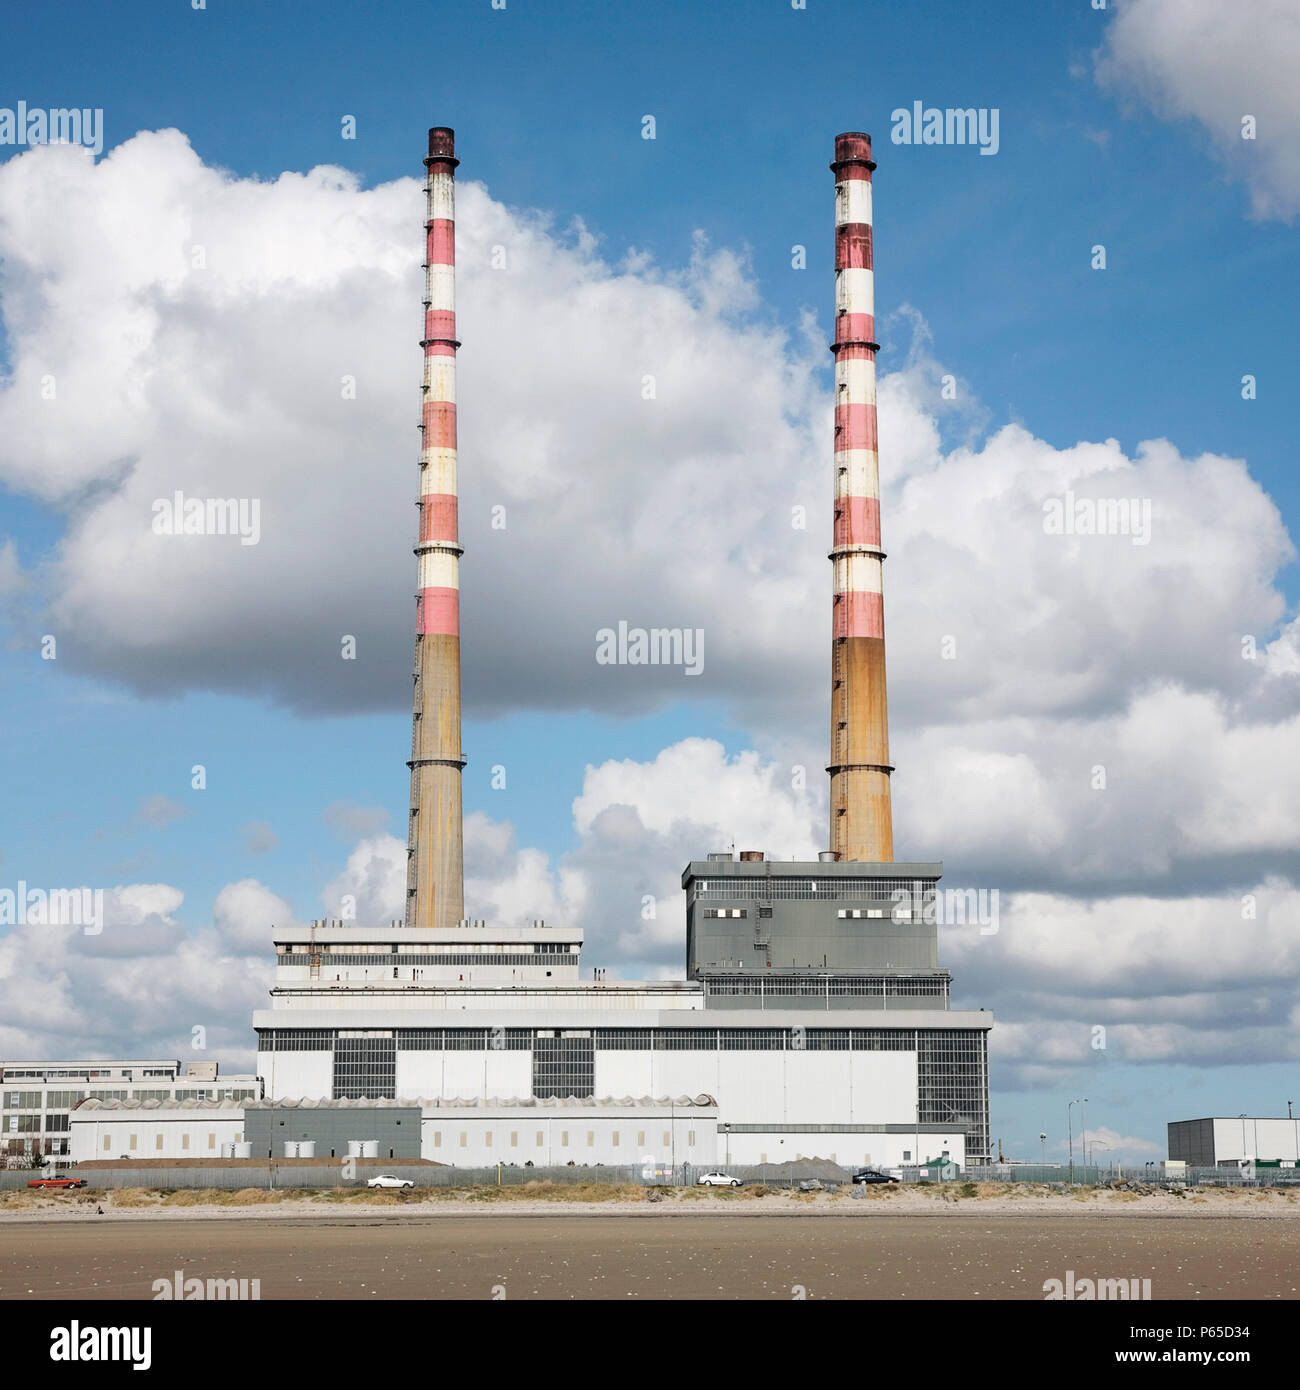 Poolbeg Power Station, Ringsend, Dublín, Irlanda 2008 Foto de stock